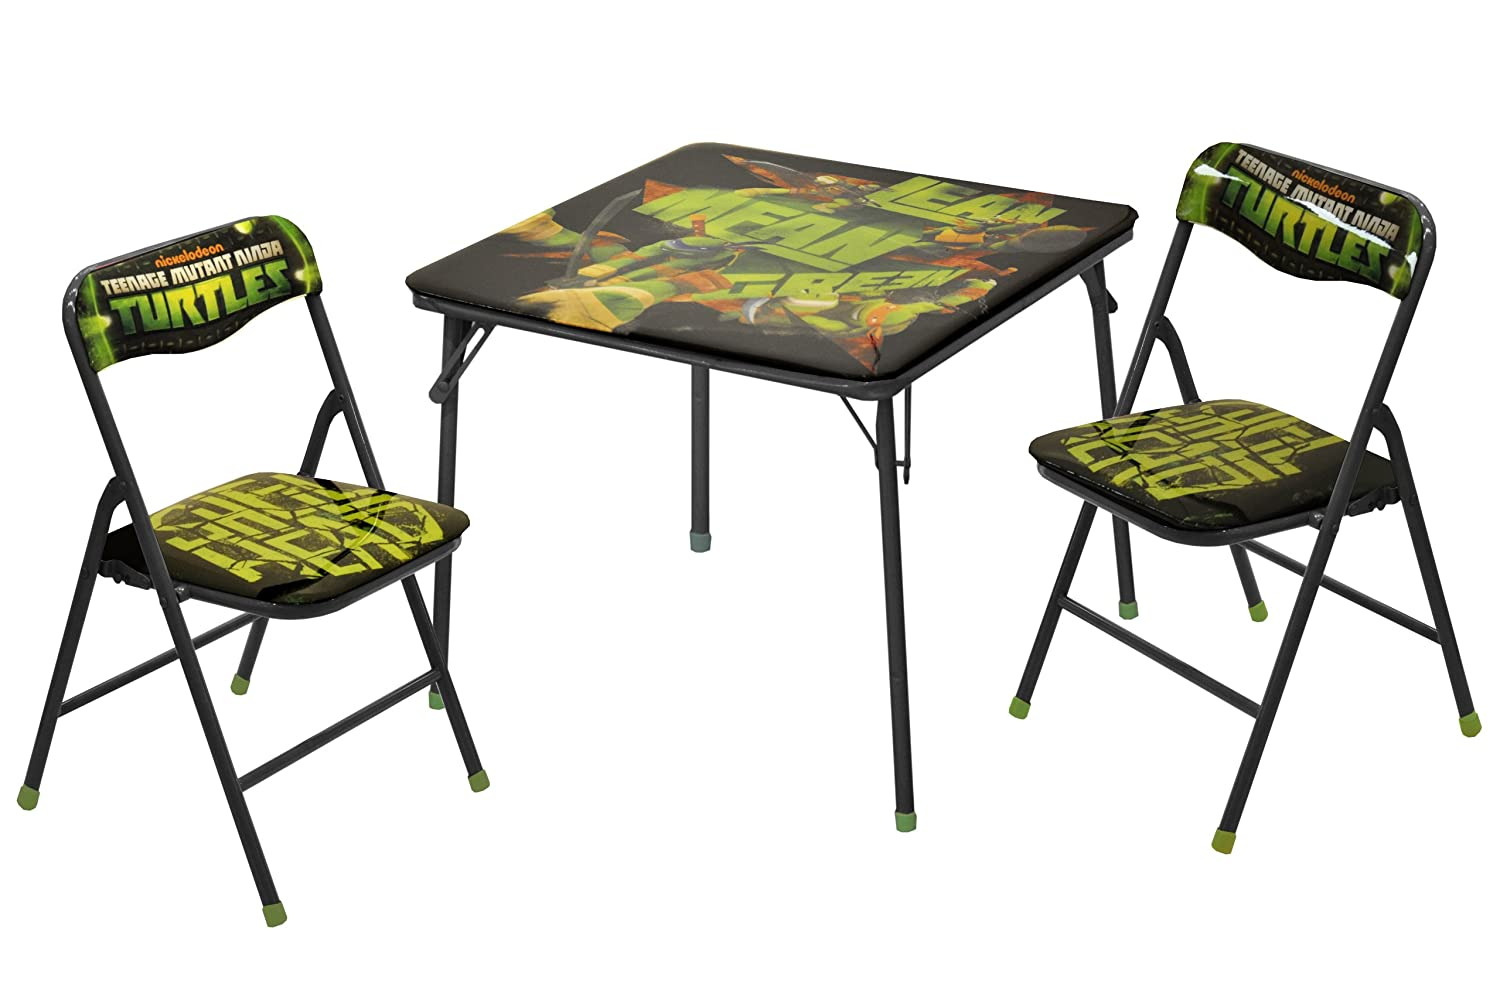 Teenage Mutant Ninja Turtles Table and Chair Set